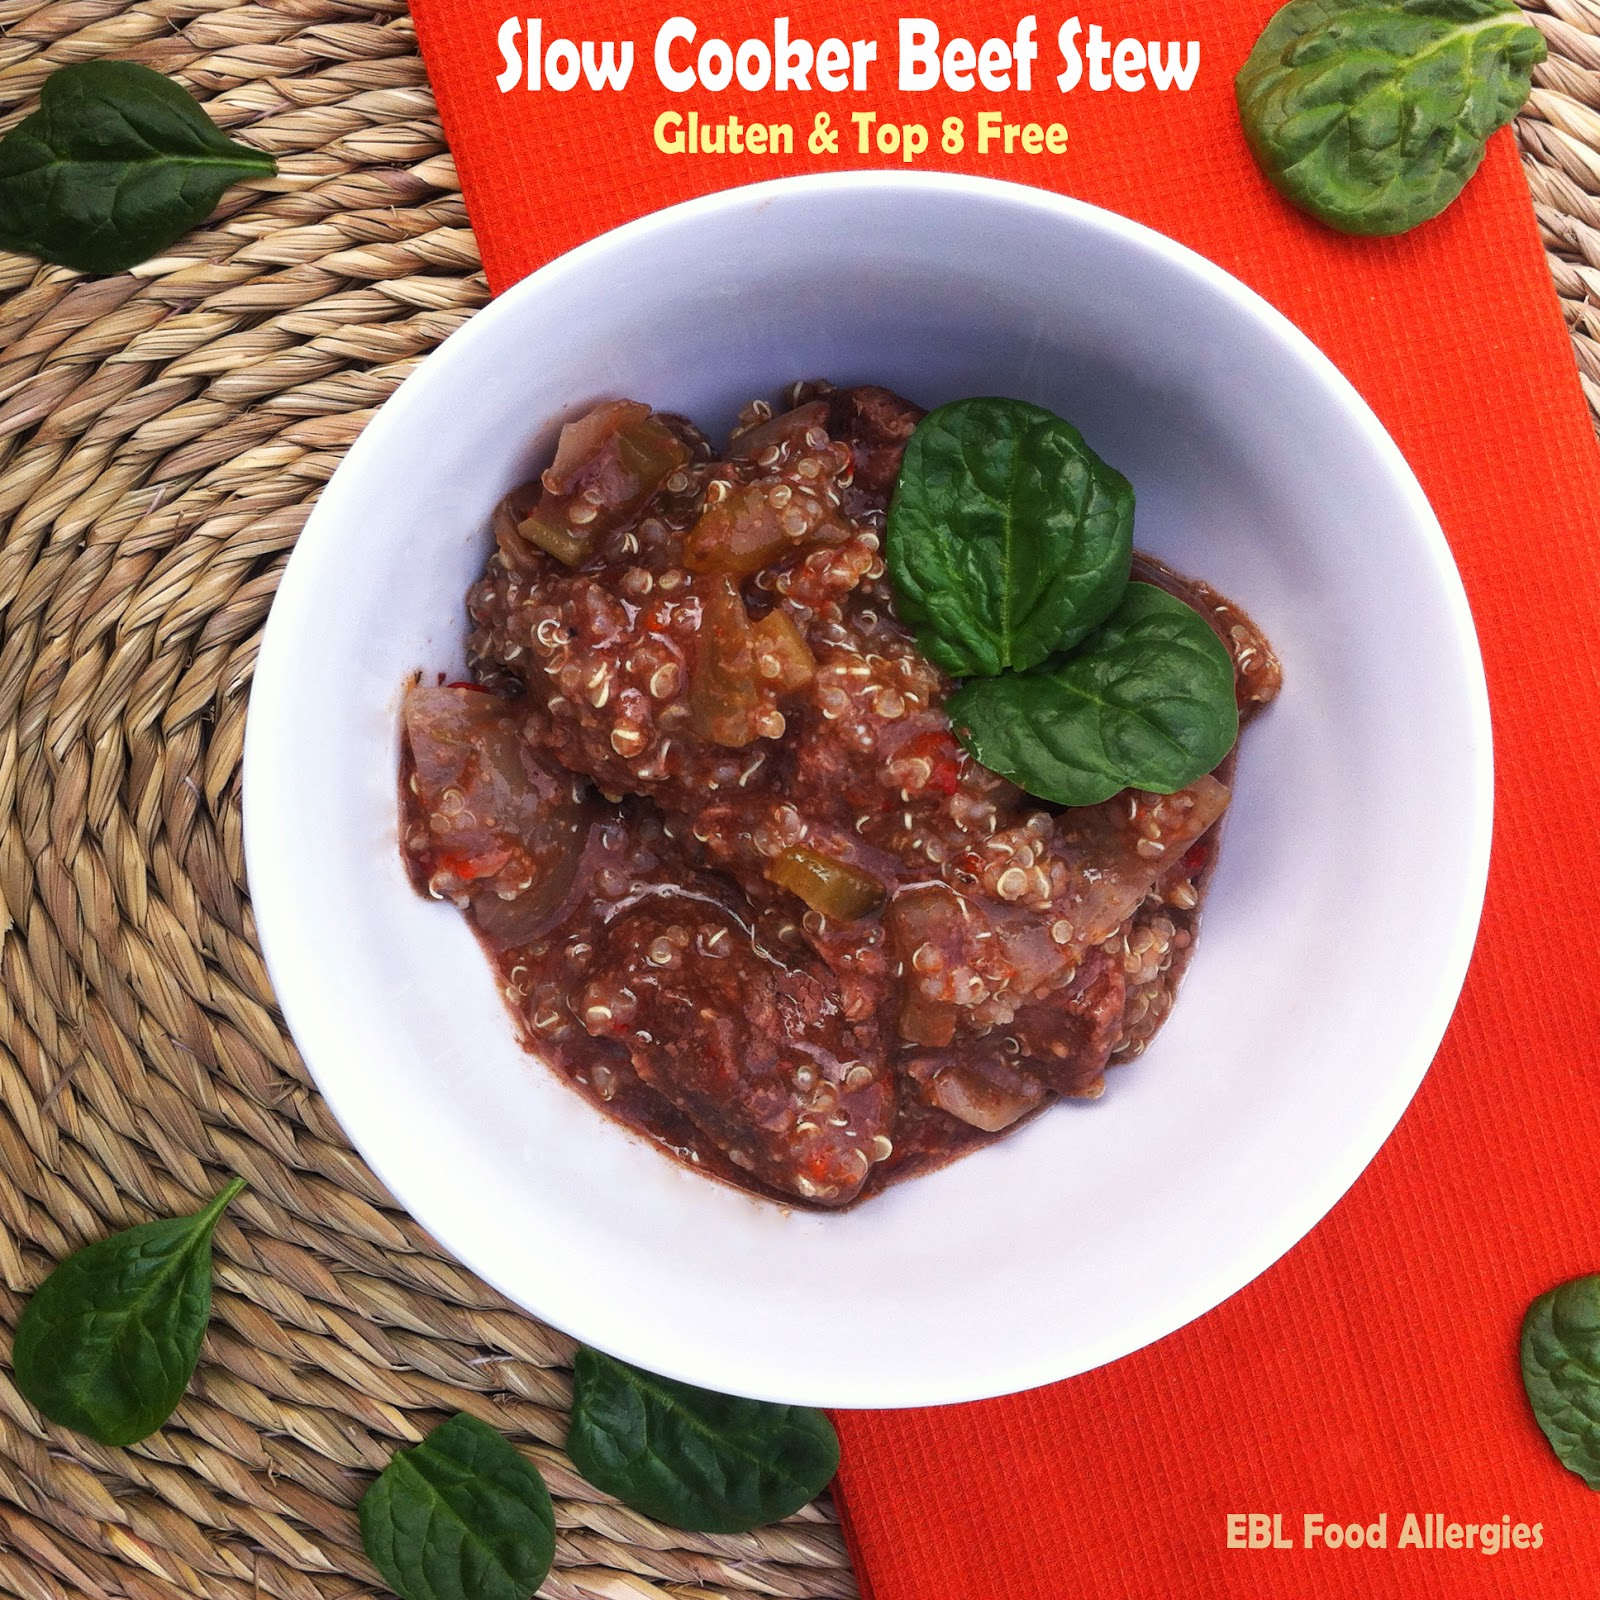 EBL Food Allergies: Allergy Free Slow Cooker Recipe - Beef Stew - Gluten & Top 8 Free